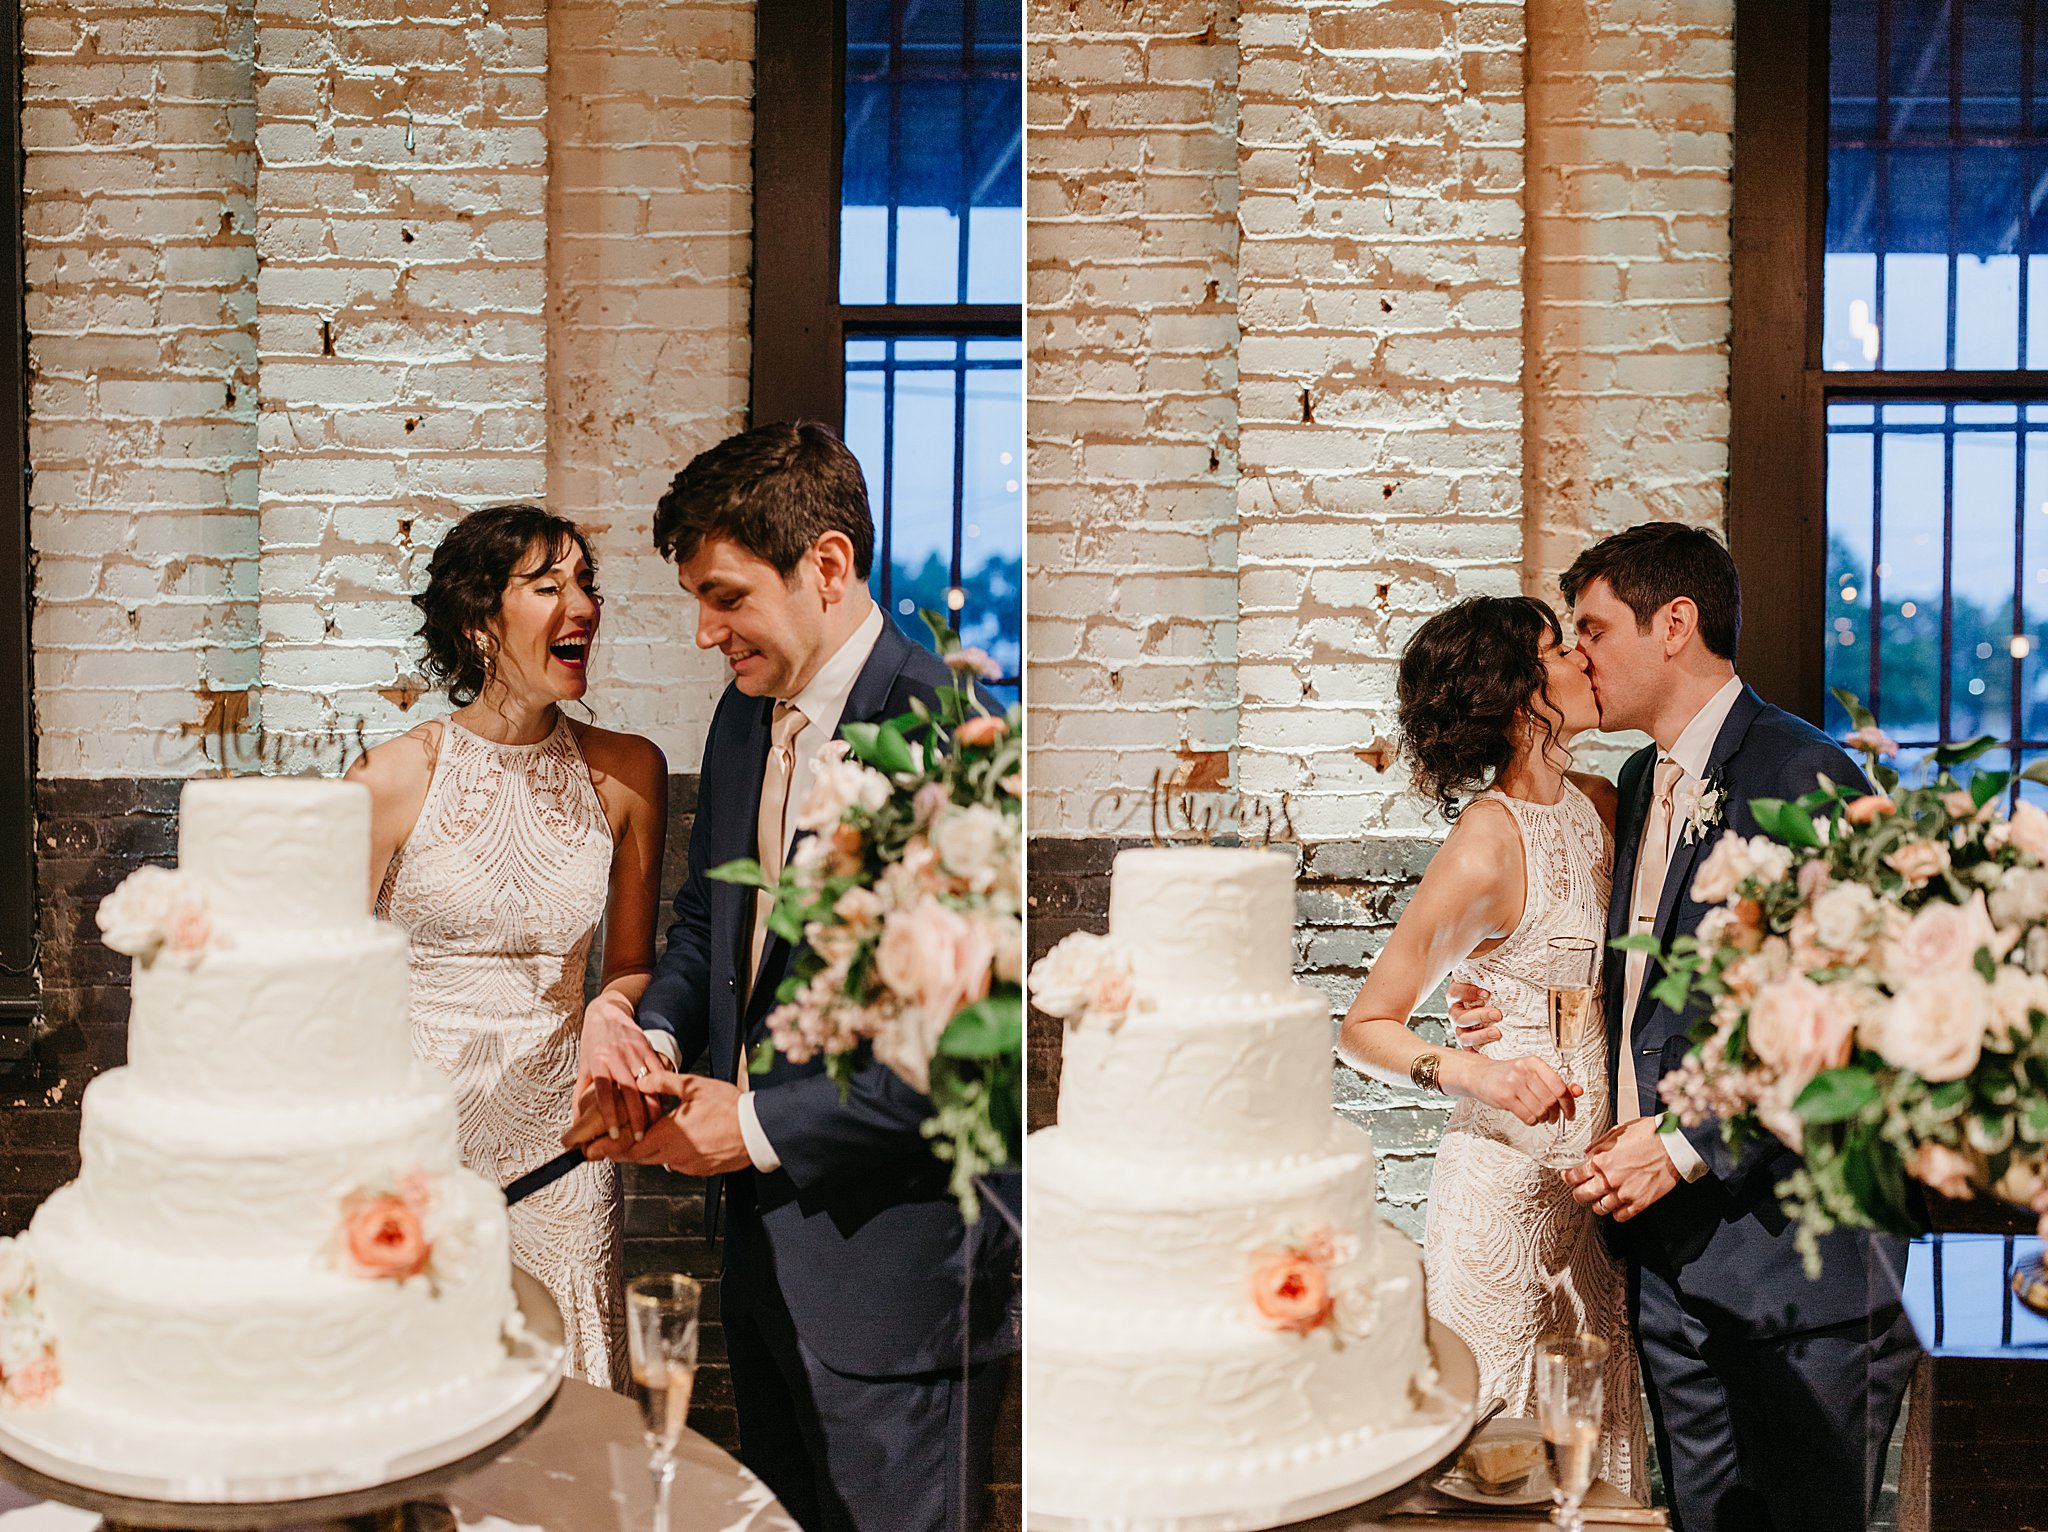 Wilderlove Co_Wedding Photographer_Industrial Wedding_Jewish Wedding_Dallas Texas Wedding_Brake & Clutch Warehouse_North Texas Photographer_0085.jpg